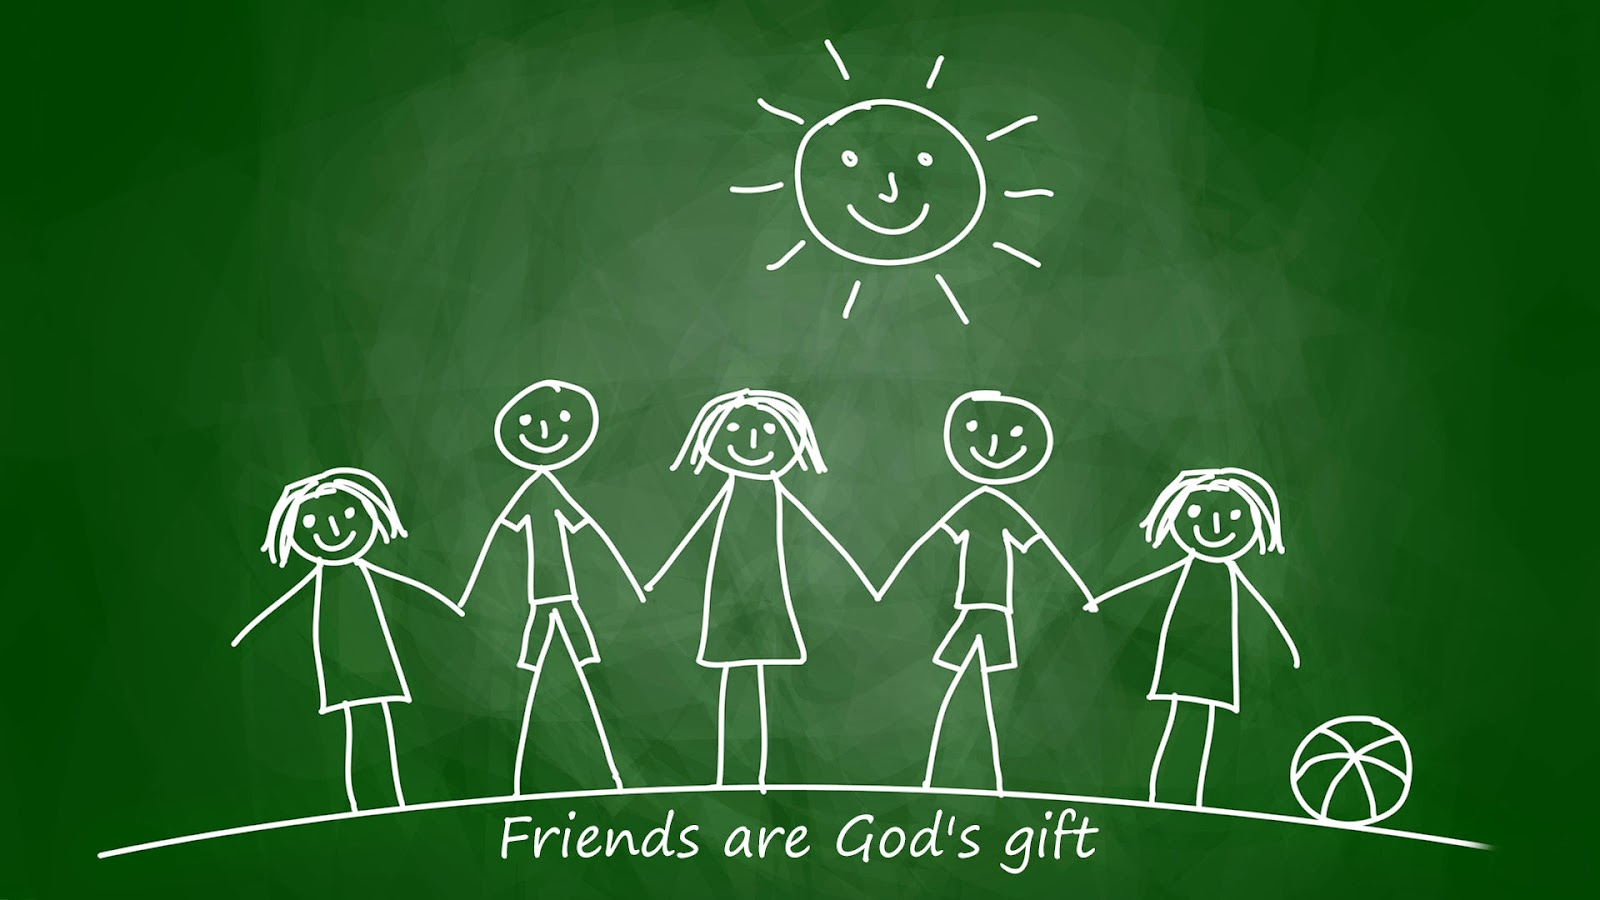 Wallpapers for Friendship Day 2014